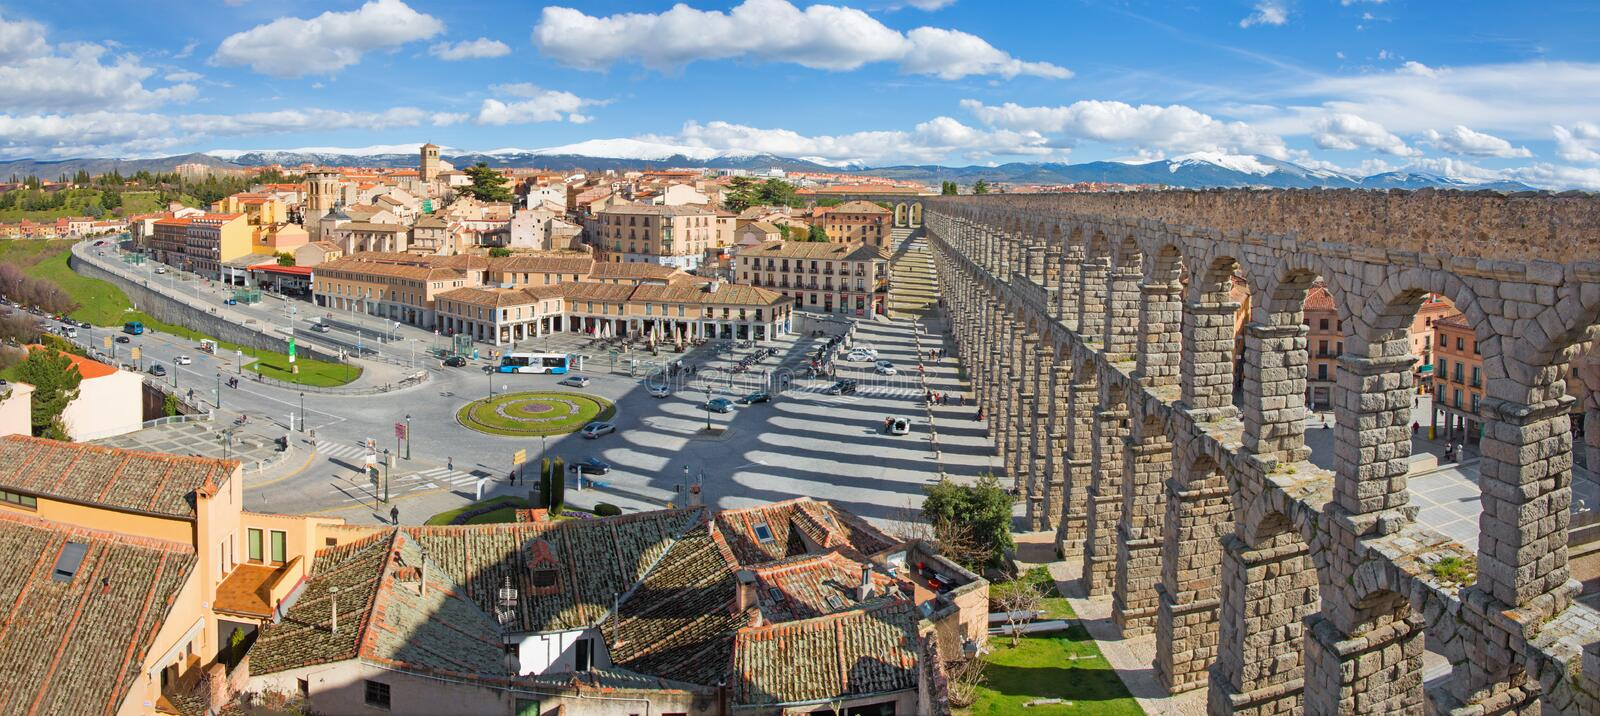 SEGOVIA, SPAIN, 2016: Aqueduct of Segovia and Plaza del Artilleria with the town. stock photo